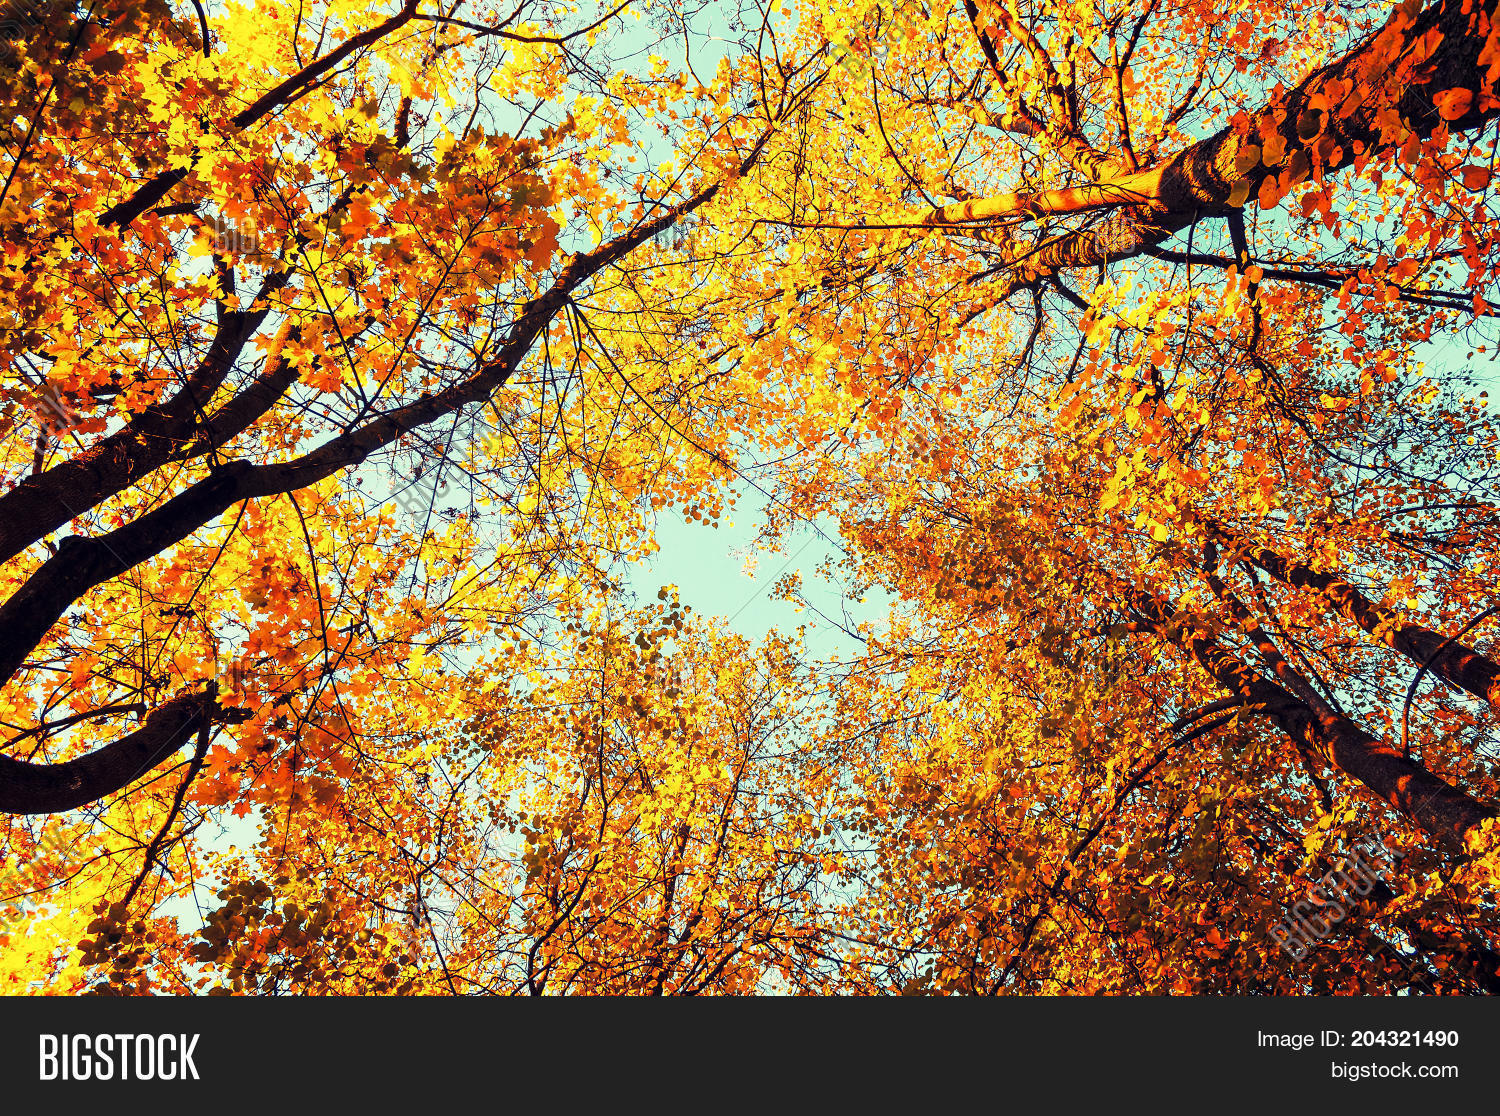 Autumn Tree Wallpaper 61 Images: Fall Tree Tops- Golden Image & Photo (Free Trial)